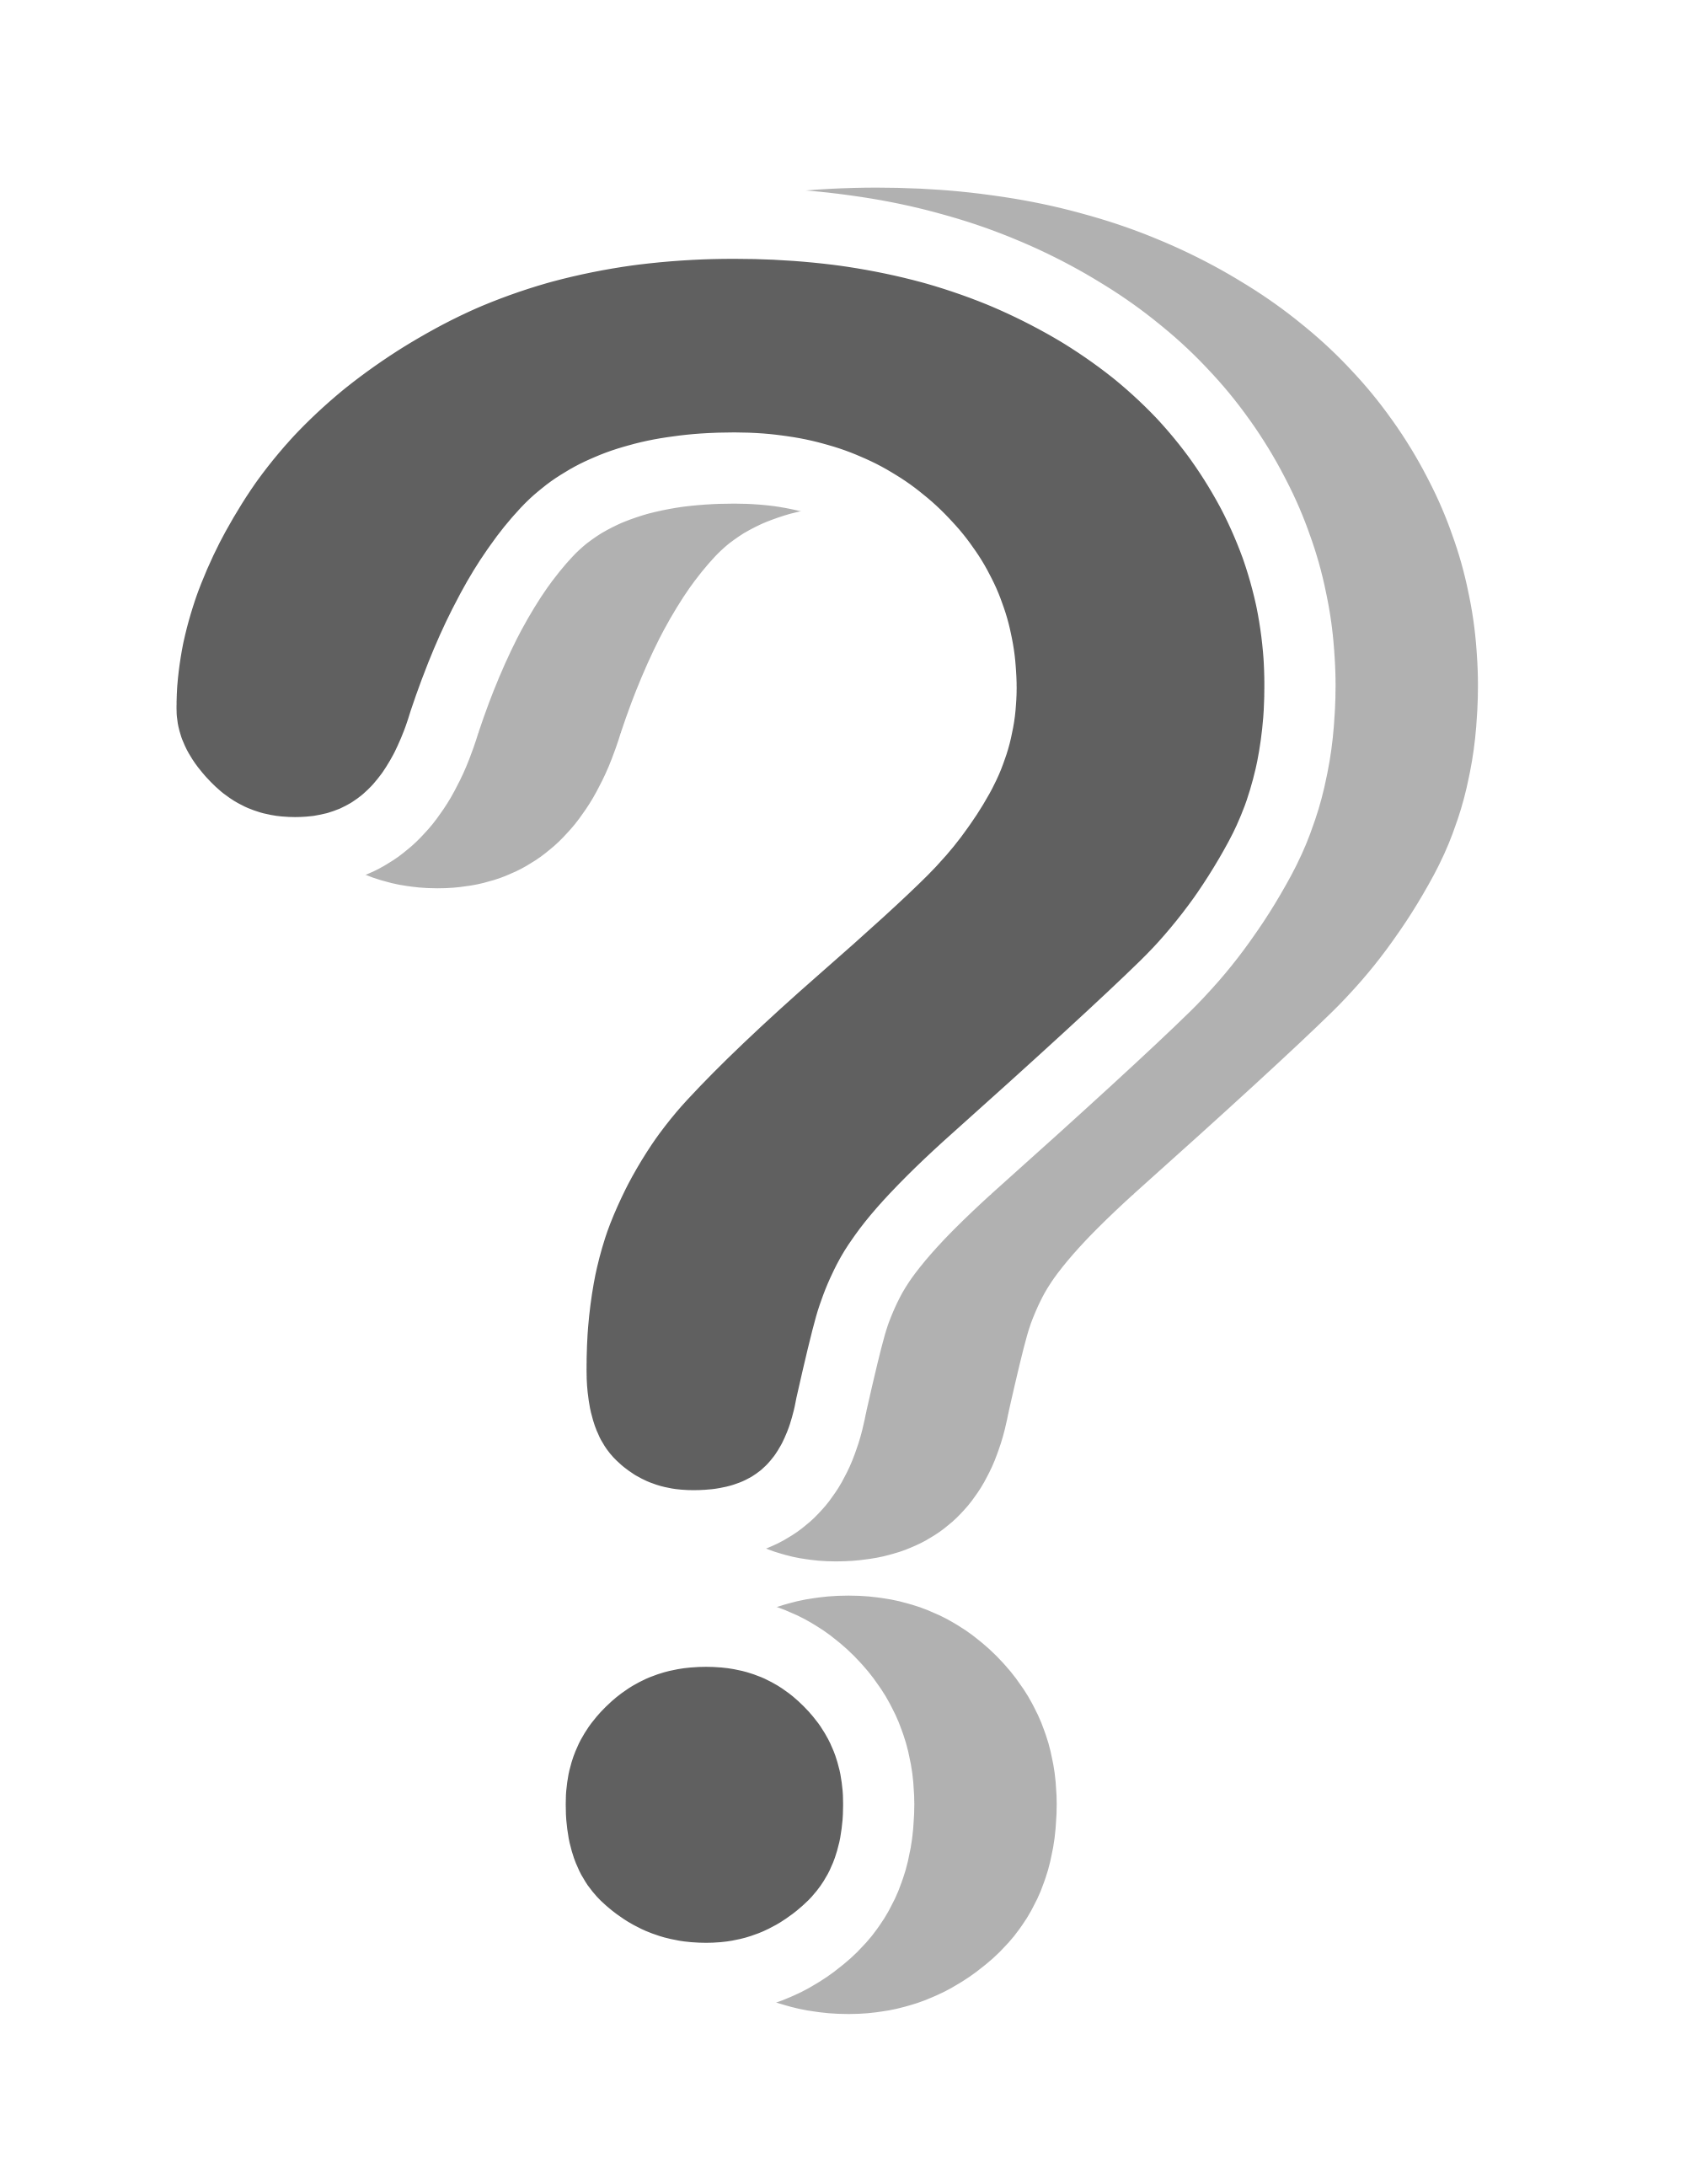 Confused question mark png. Transparent images pluspng image